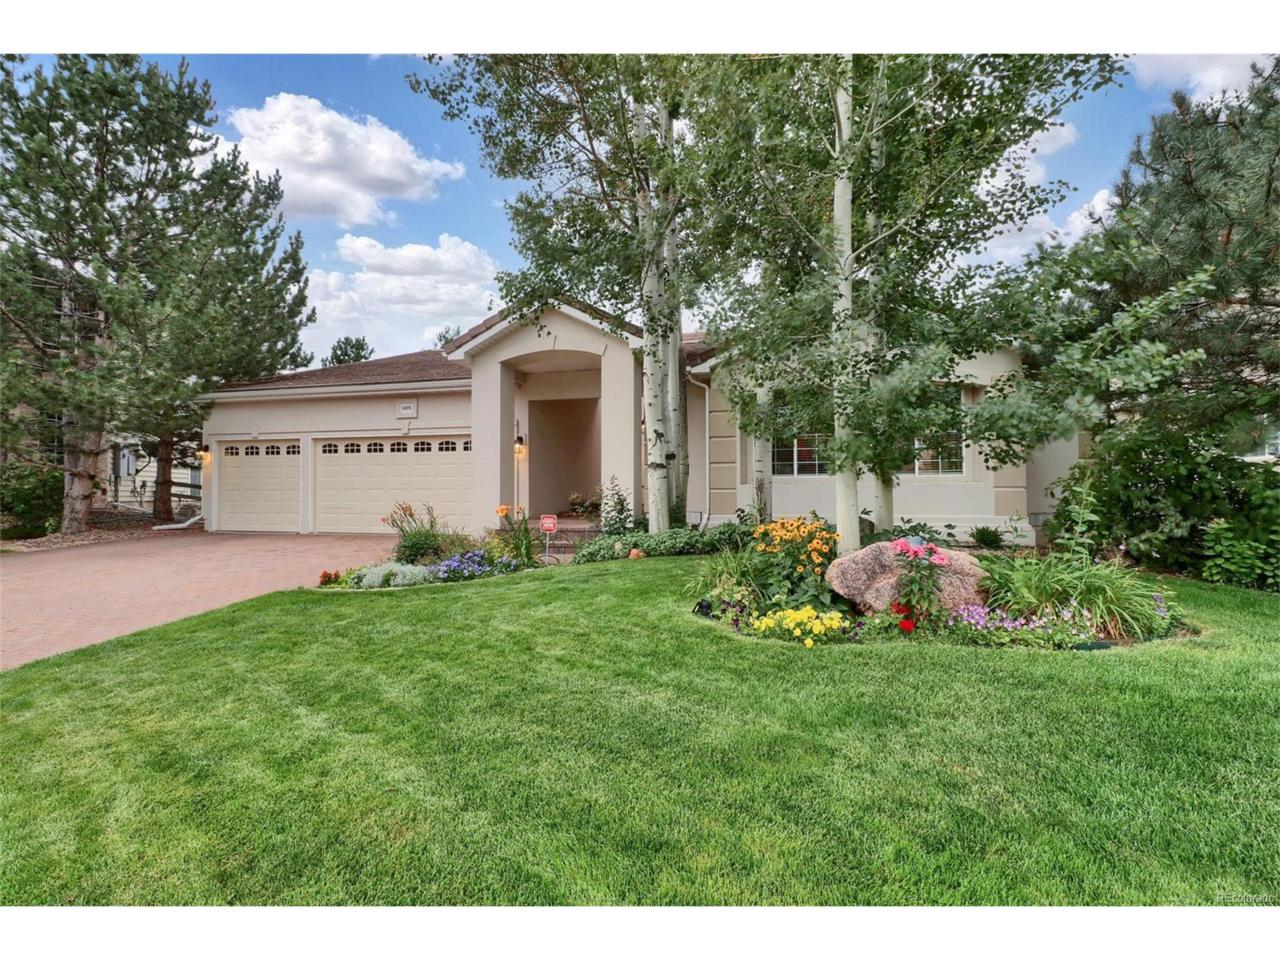 16876 E Weaver Place, Centennial, CO 80016 (MLS #2824638) :: 8z Real Estate